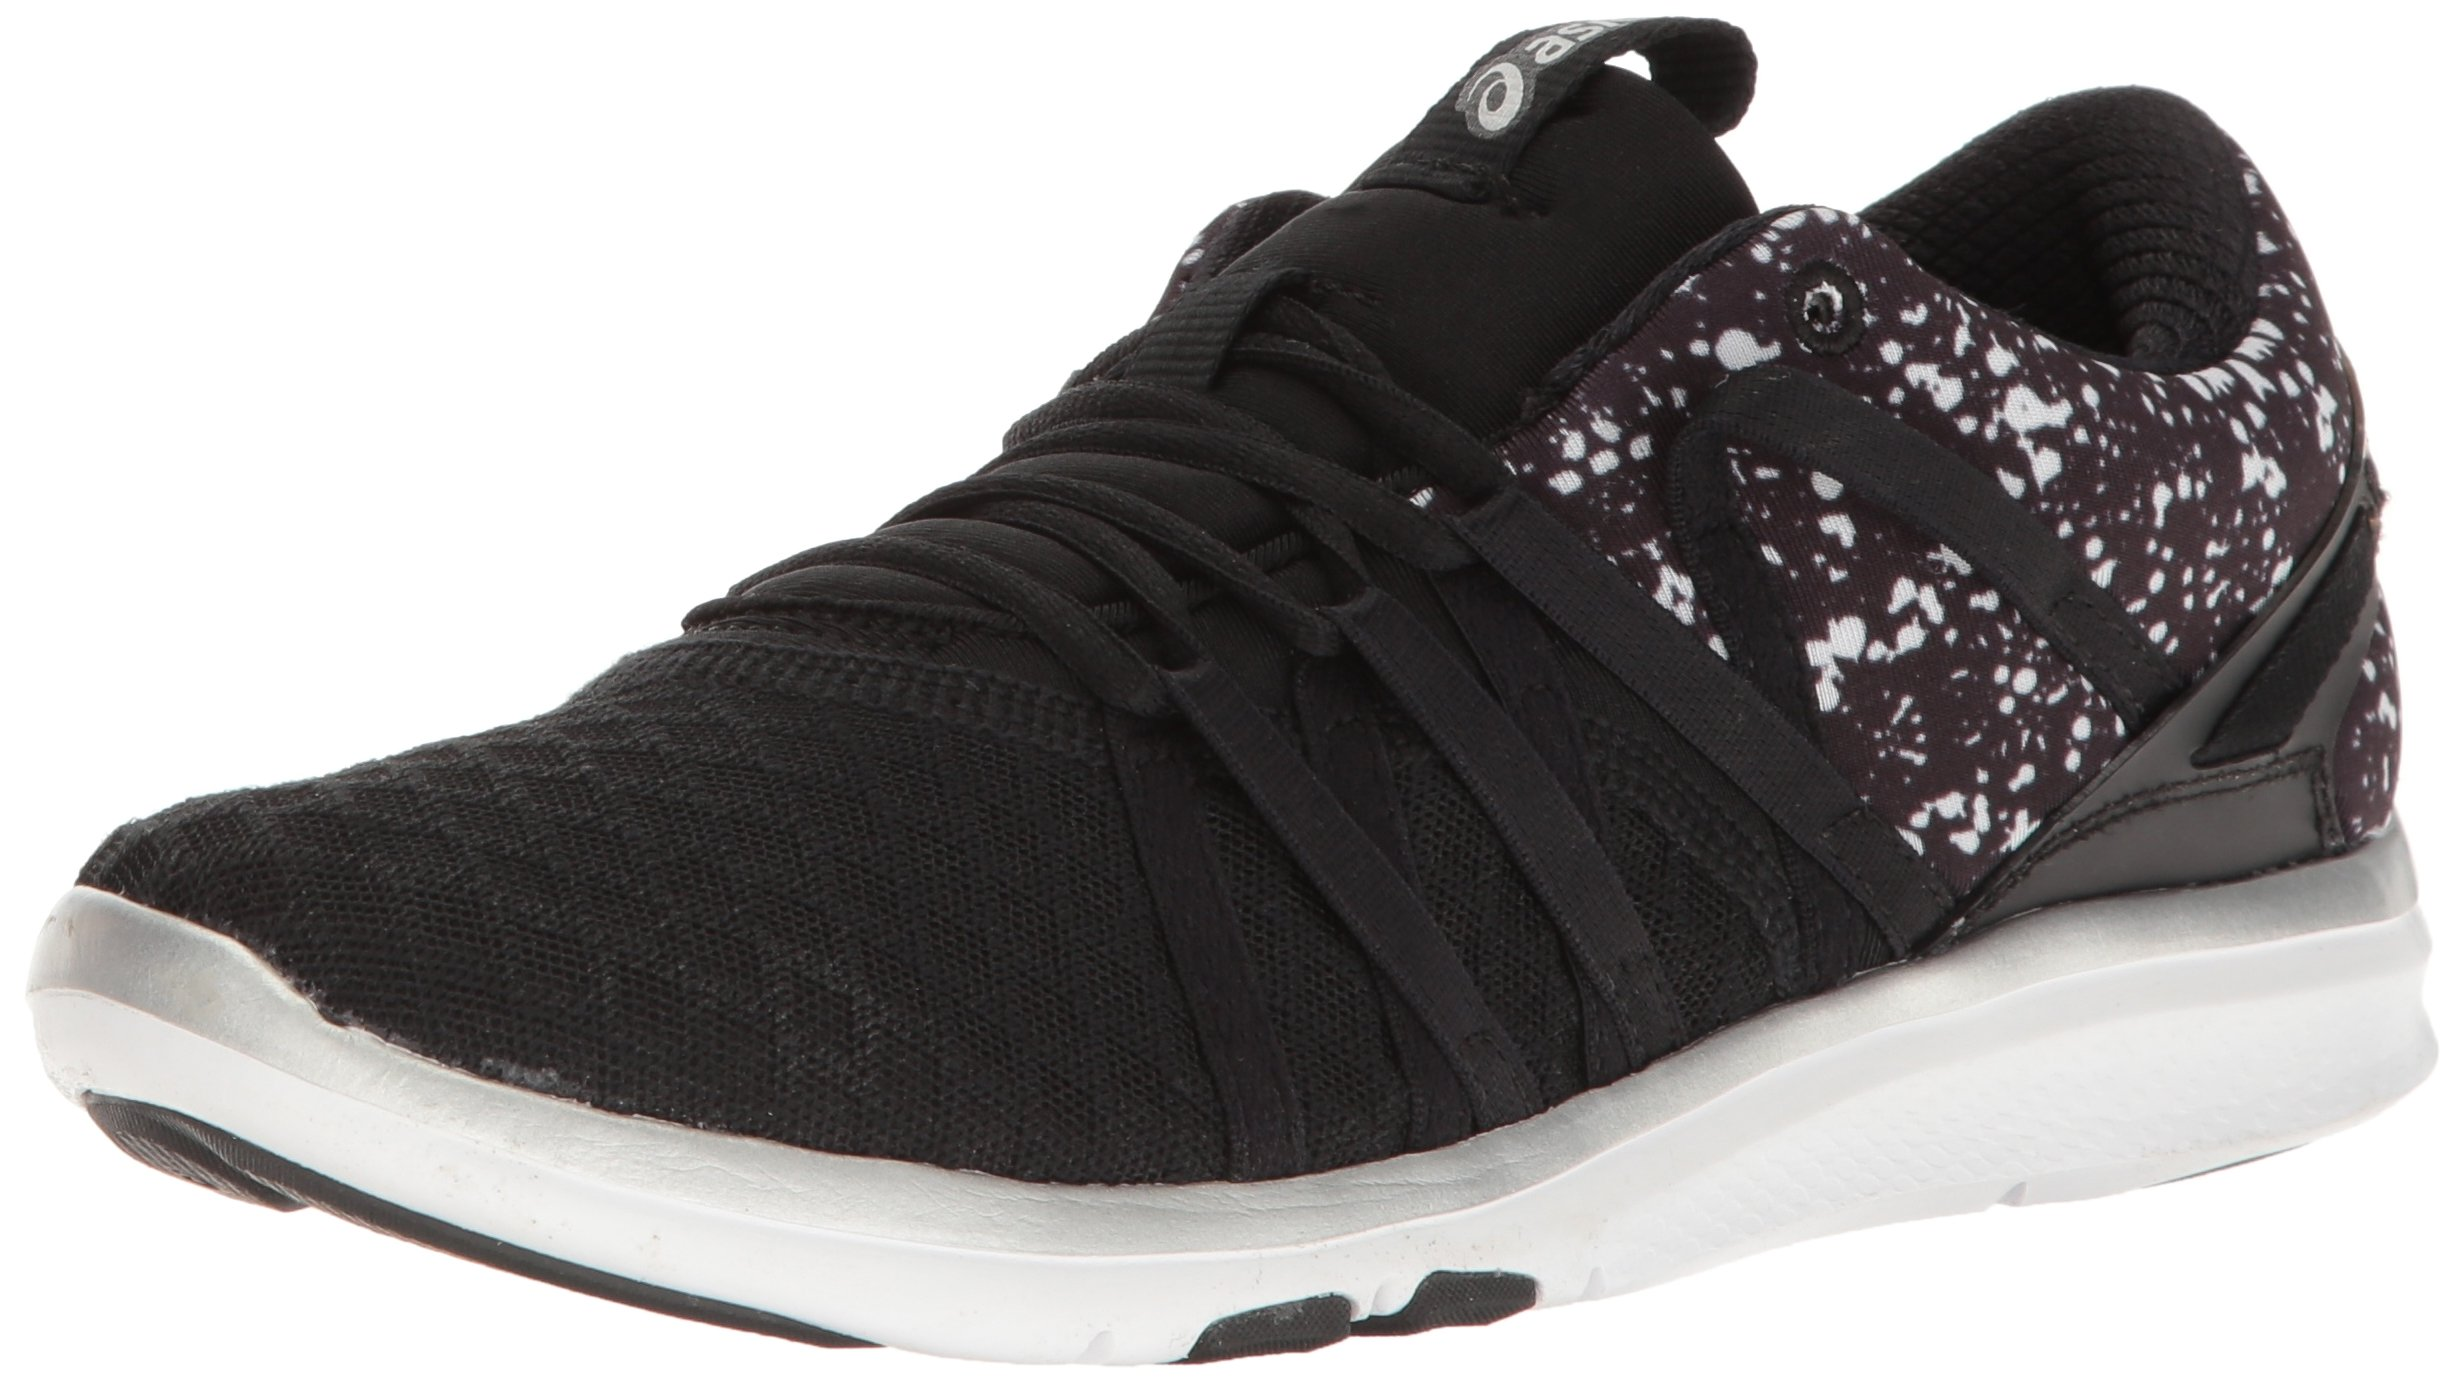 ASICS Women's Gel-Fit Yui Cross-Trainer Shoe, Black/Silver/White, 8.5 M US